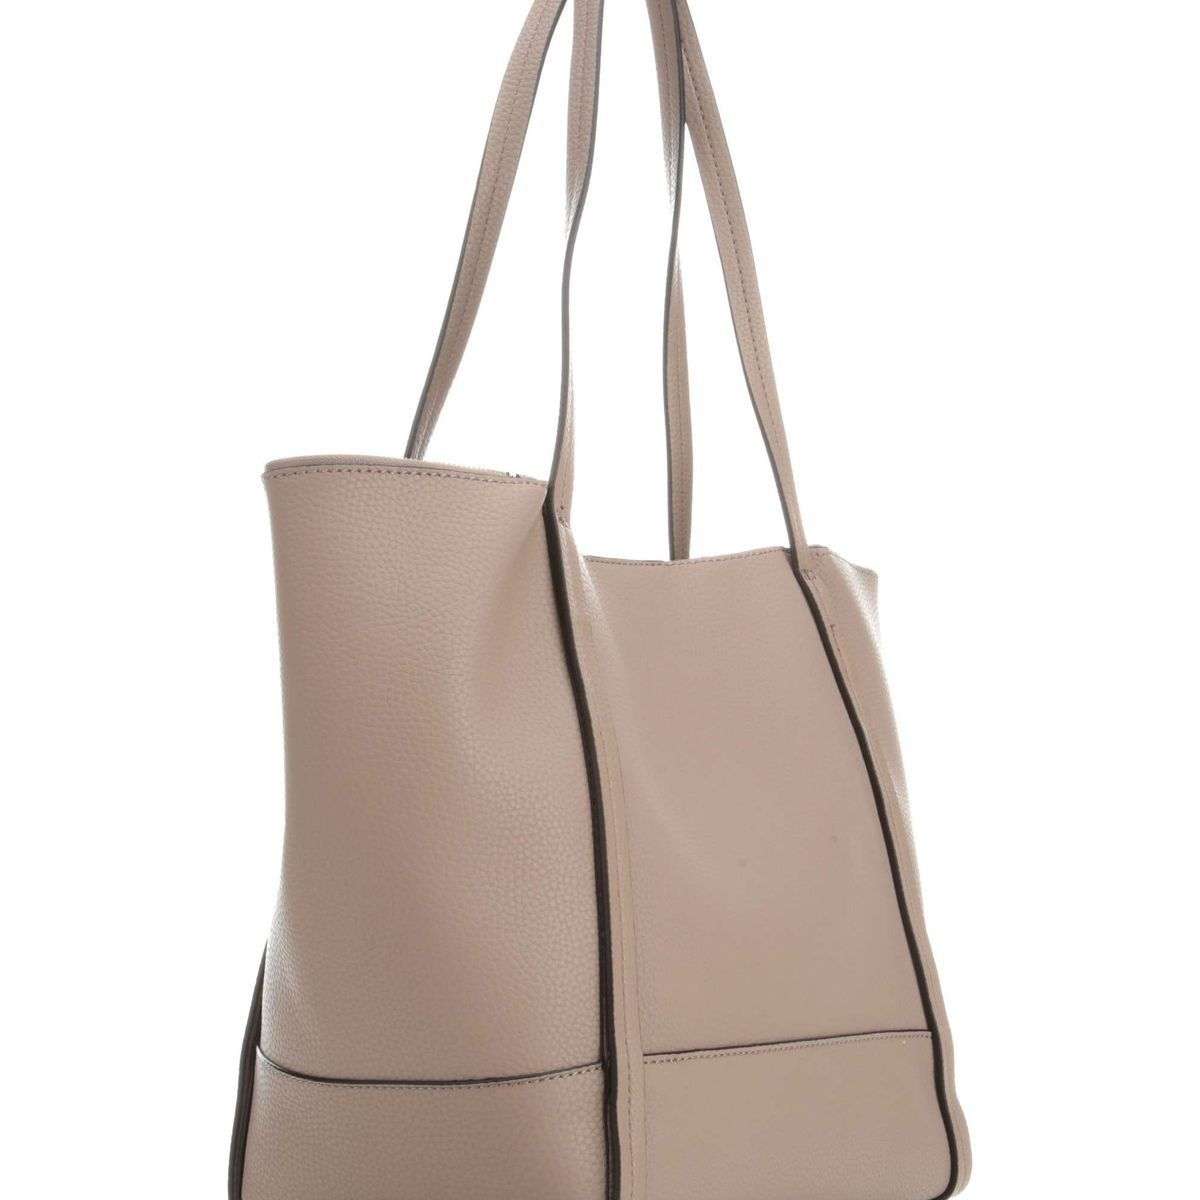 Guess femme heidi tote taupe1120001_6